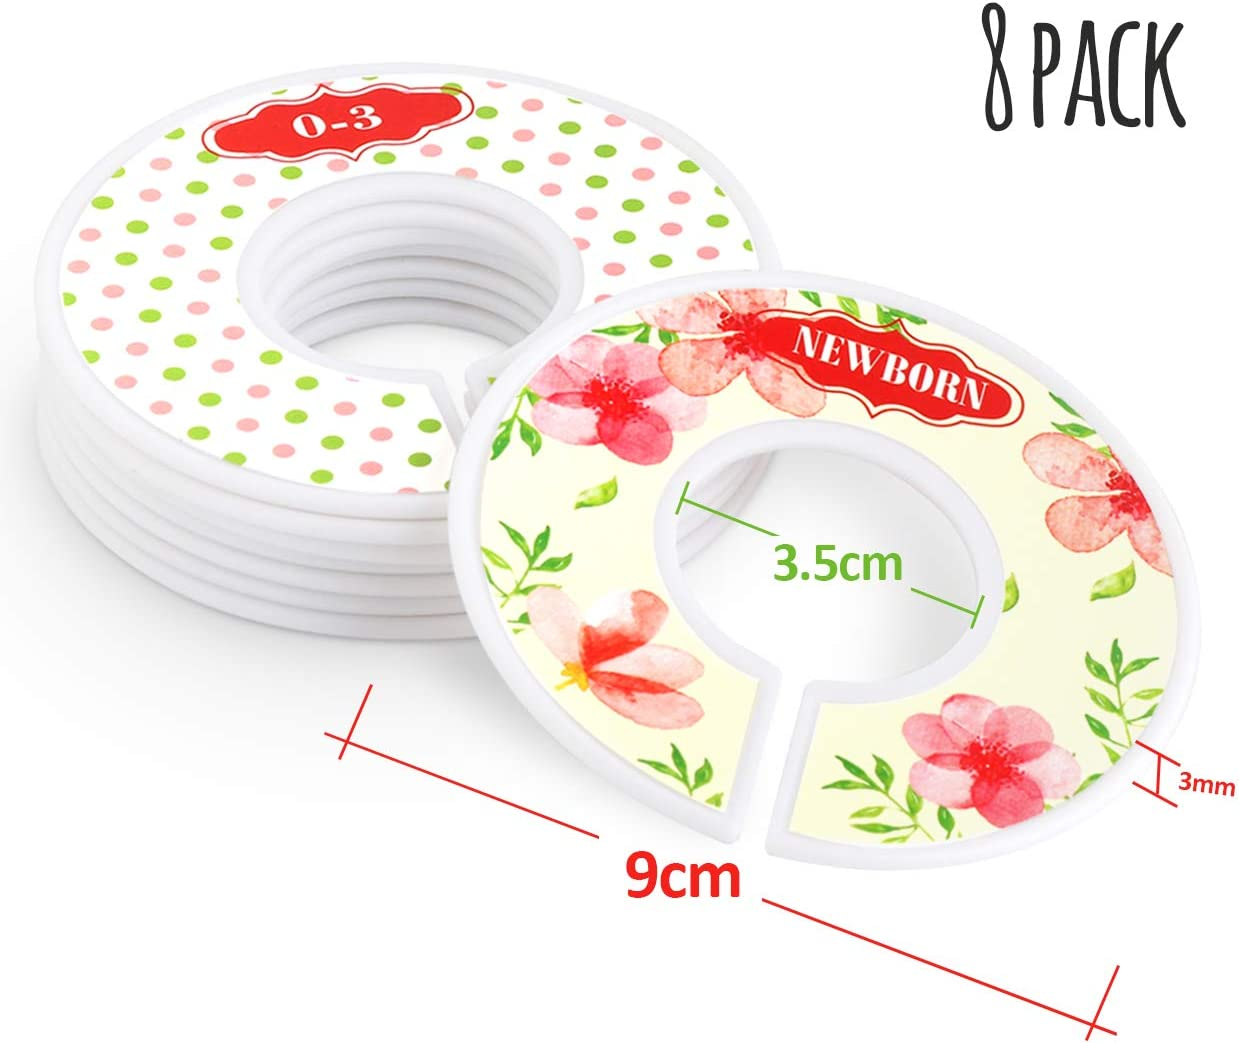 Baby Closet Organizer Dividers Age Hanger Dividers for Baby with Flower Design Size from Newborn to Toddler 8 Pack Unisex Closet Size Dividers for Baby Hangers